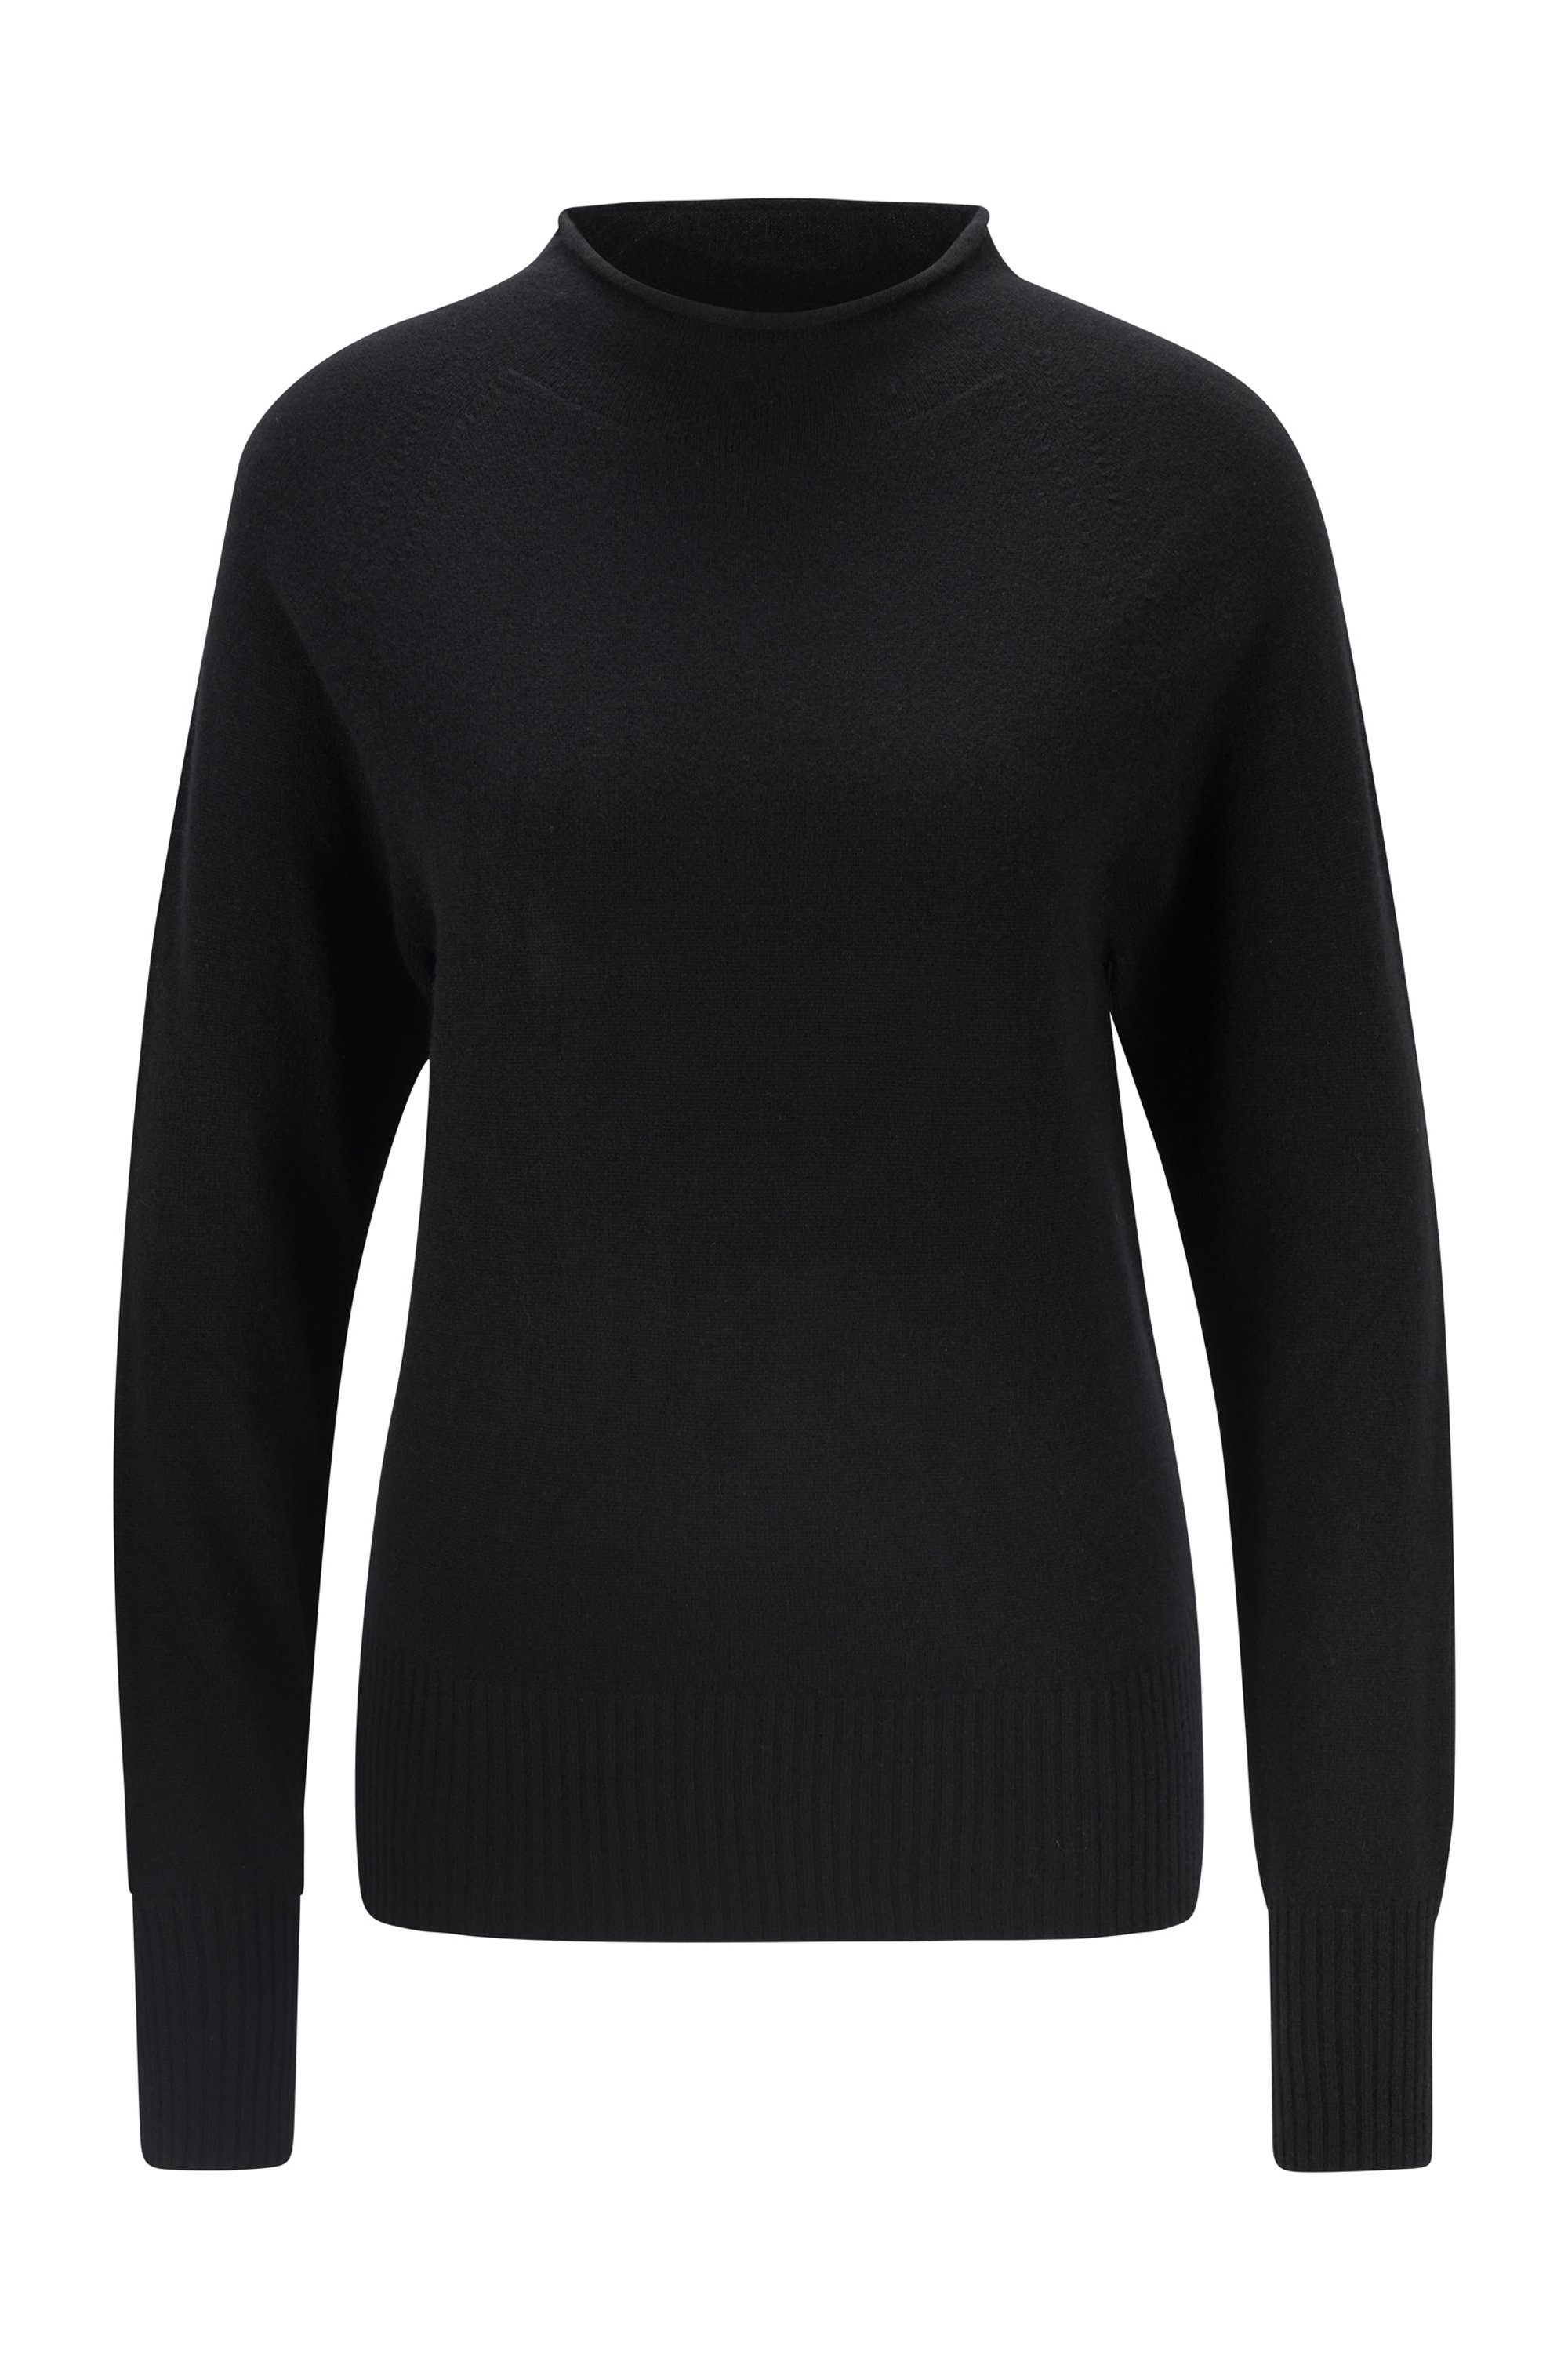 Regular-fit sweater with funnel neck in pure cashmere, Black